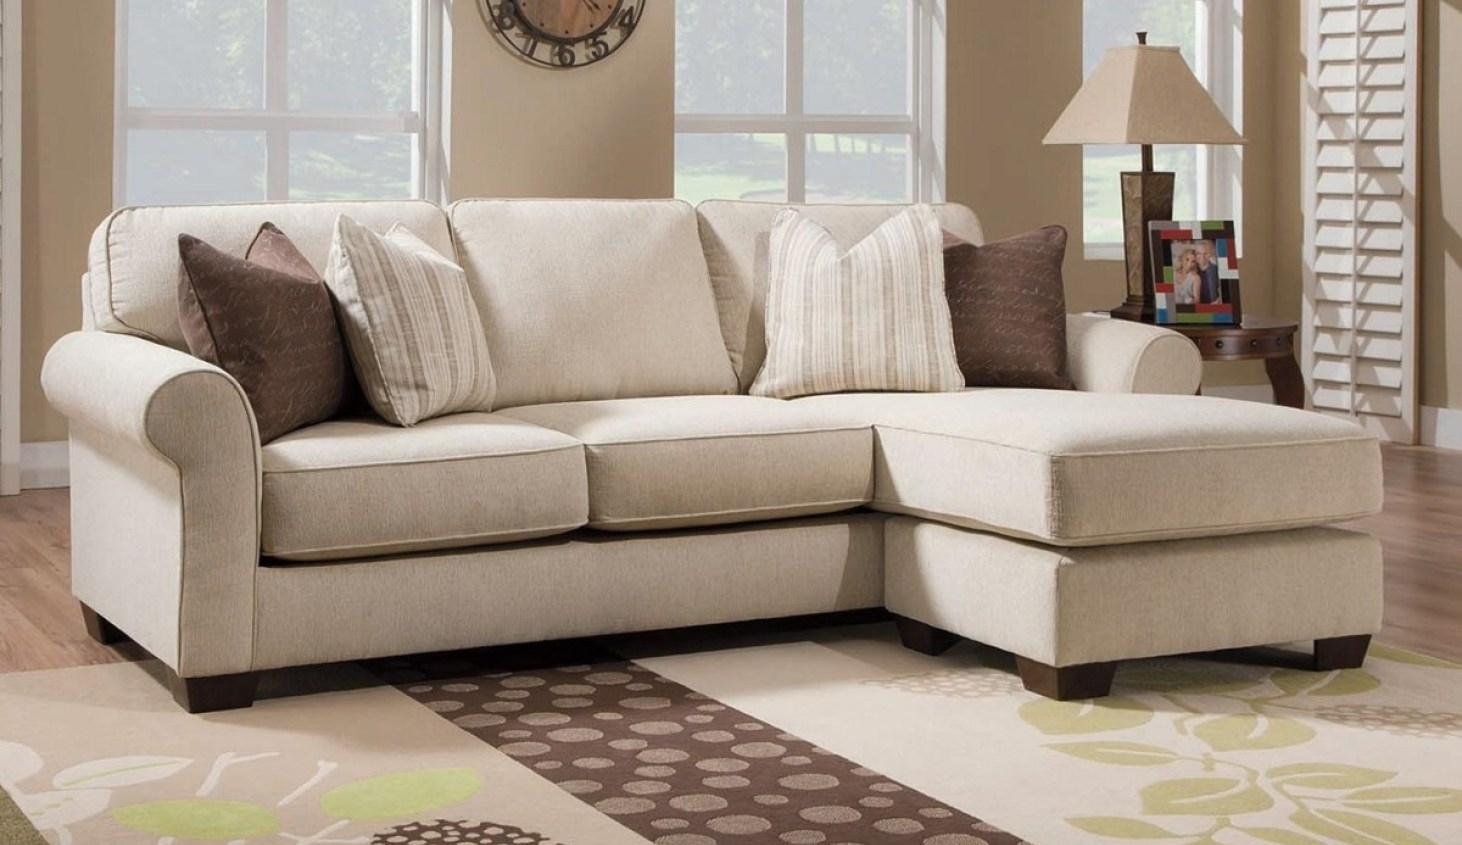 Surprising Sofa Idea For Sofa Sectional Sofas Austin Tx Within Sectional Sofas At Austin (View 14 of 15)